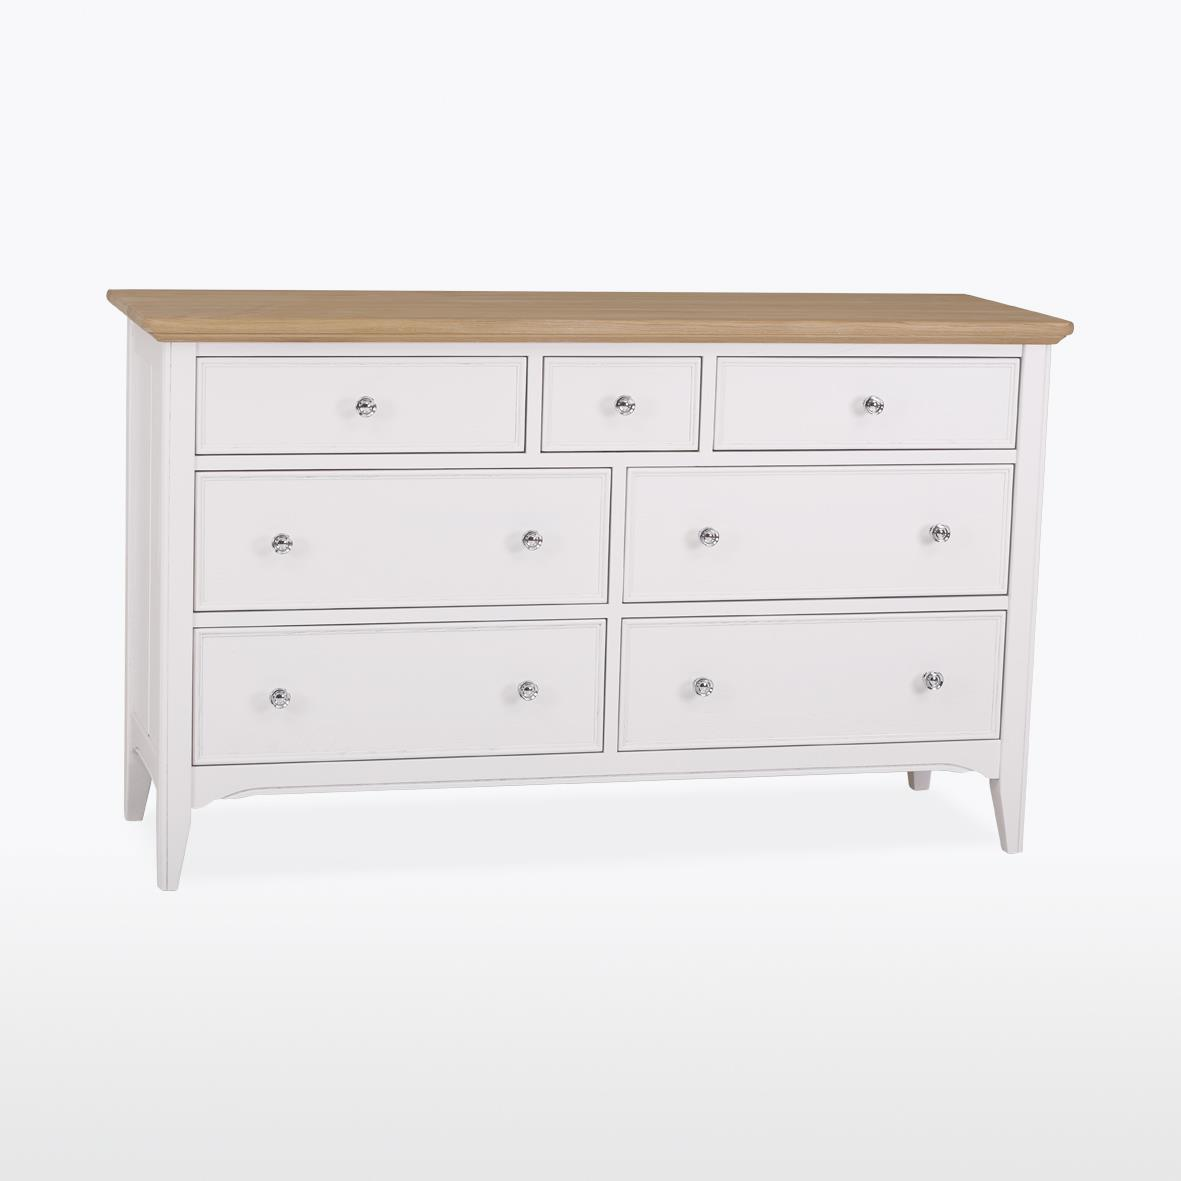 NEW ENGLAND -  7 Drawer Chest (4+3) NEL804